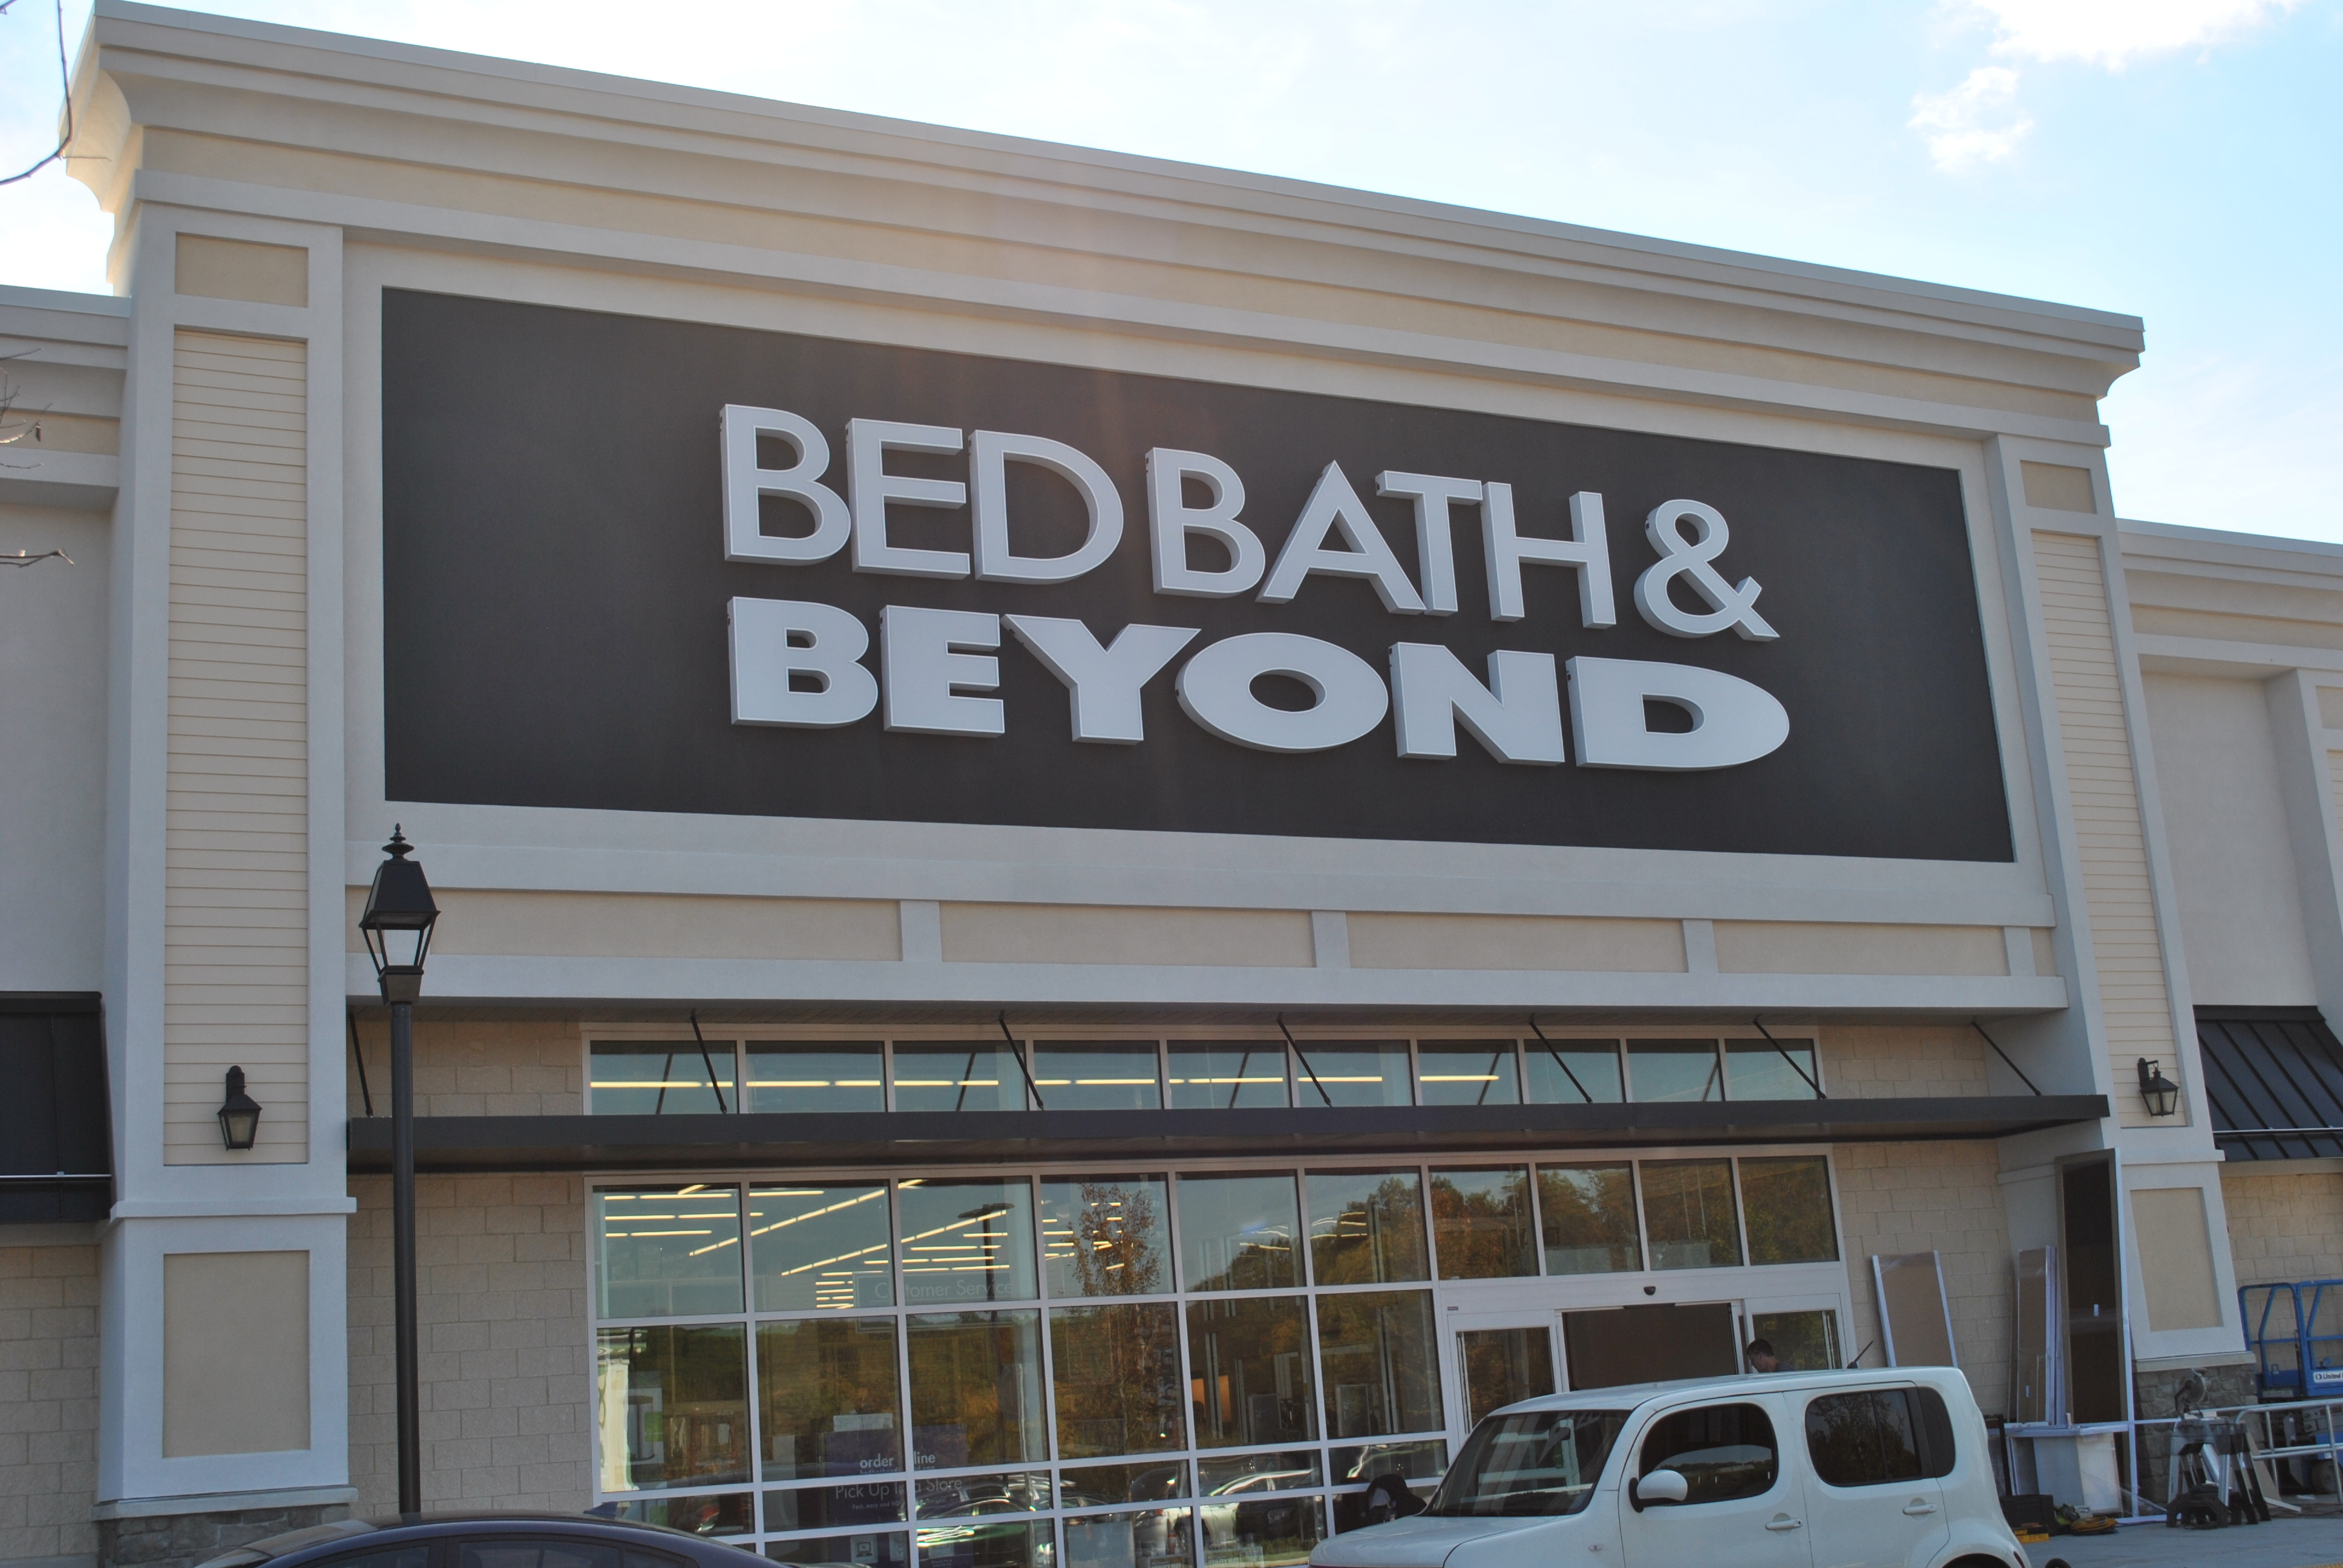 4/5/17 - Bed Bath & Beyond# is how online purchases appear on credit card statements. I got a text alert from my credit card for $1, If you don't get alerts, I .